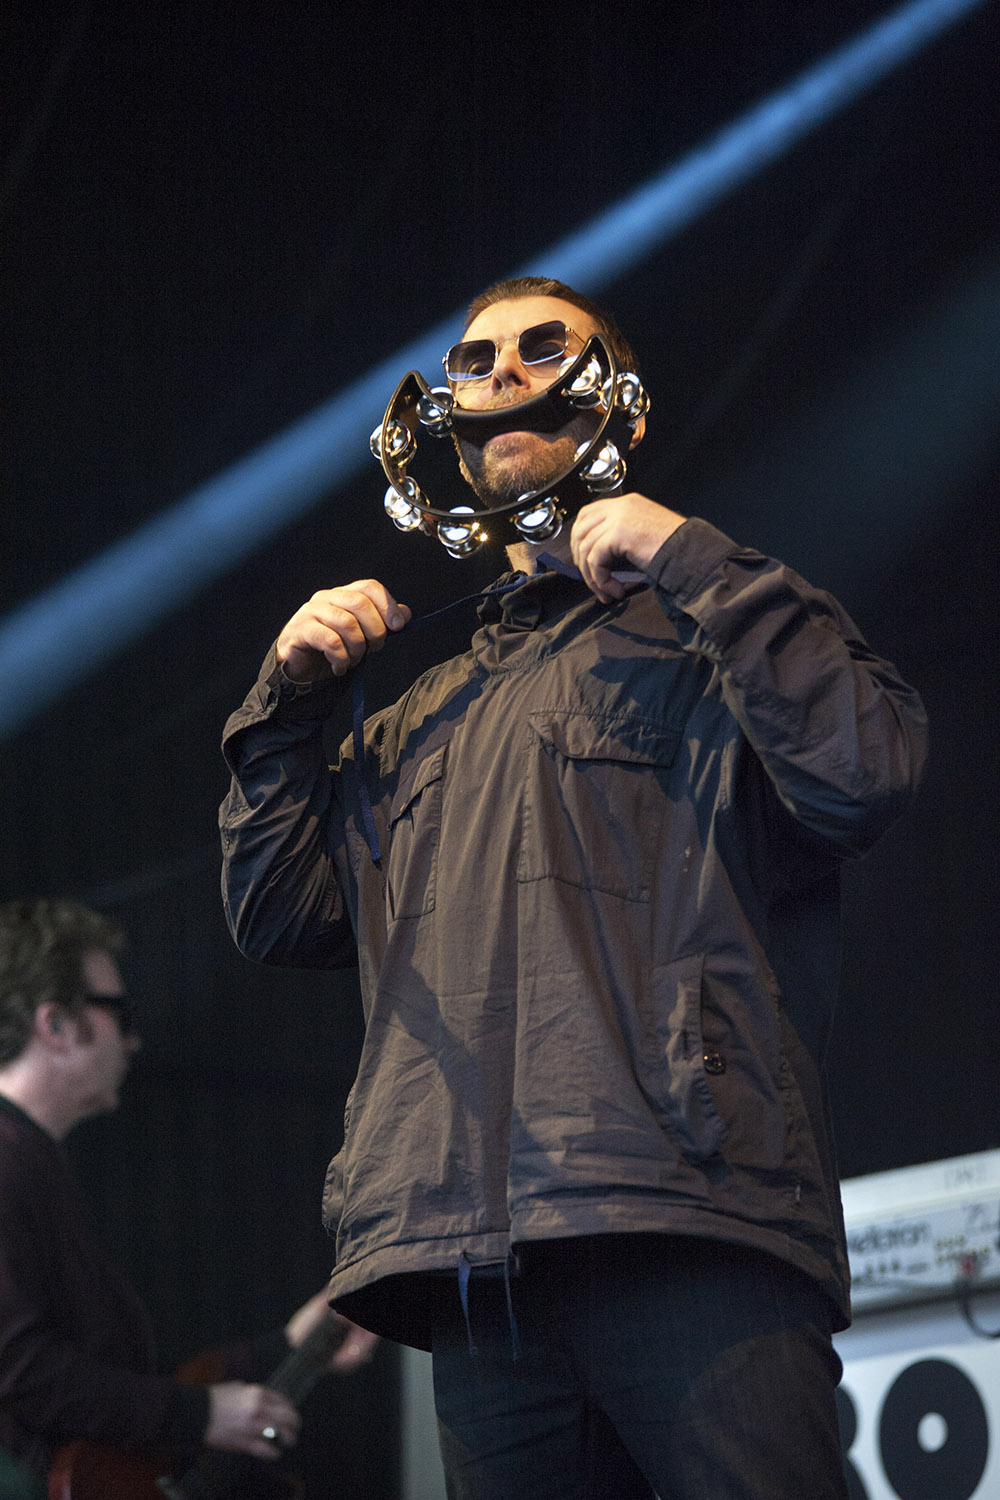 Liam Gallagher performs on his first 'solo' tour of Australia, at the 25th annual Falls Music and Arts Festival in Lorne. Image: Kirsty Umback.